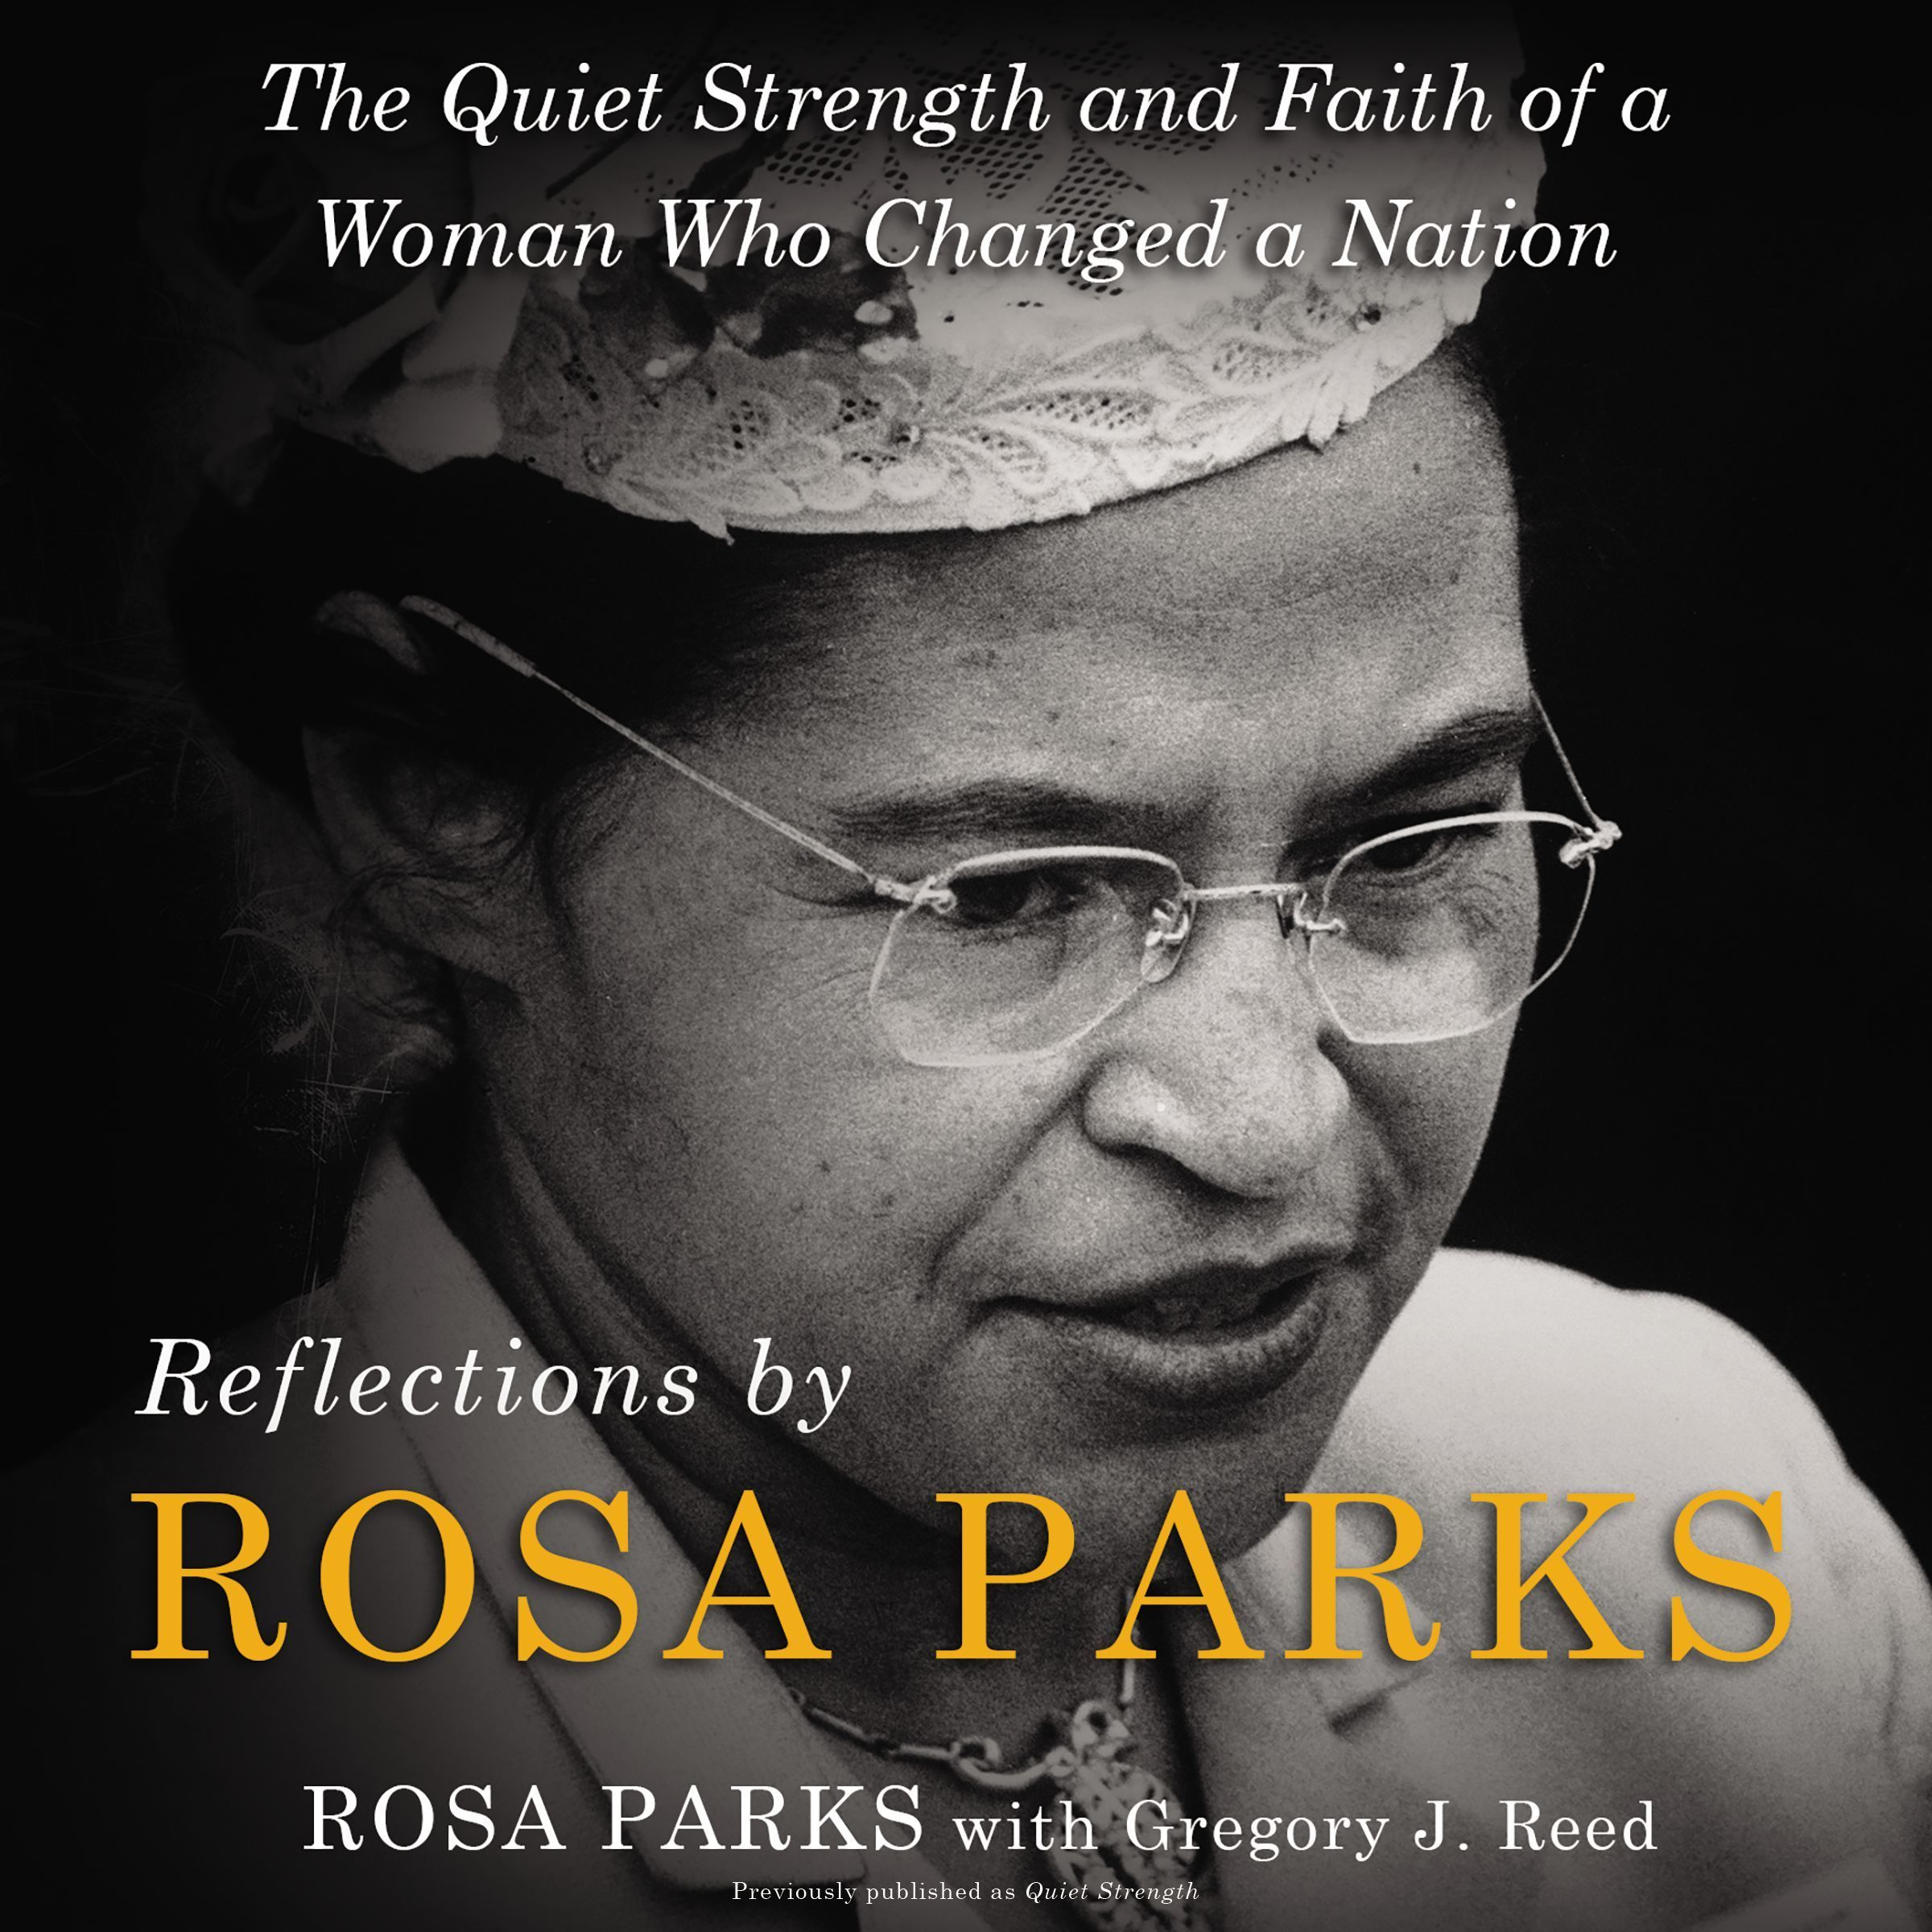 Printable Reflections by Rosa Parks: The Quiet Strength and Faith of a Woman Who Changed a Nation Audiobook Cover Art